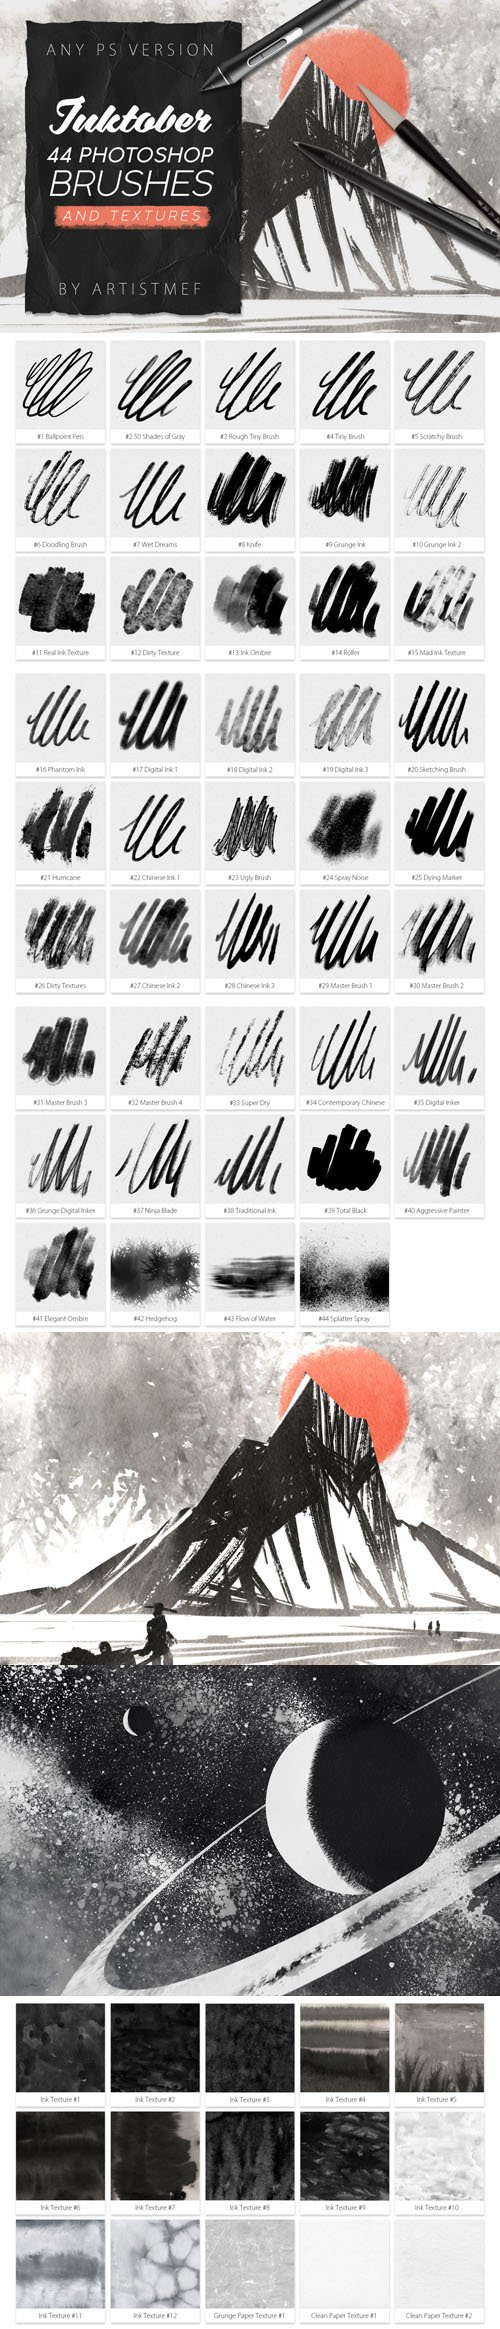 Inktober 44 Photoshop Brushes & Textures Collection